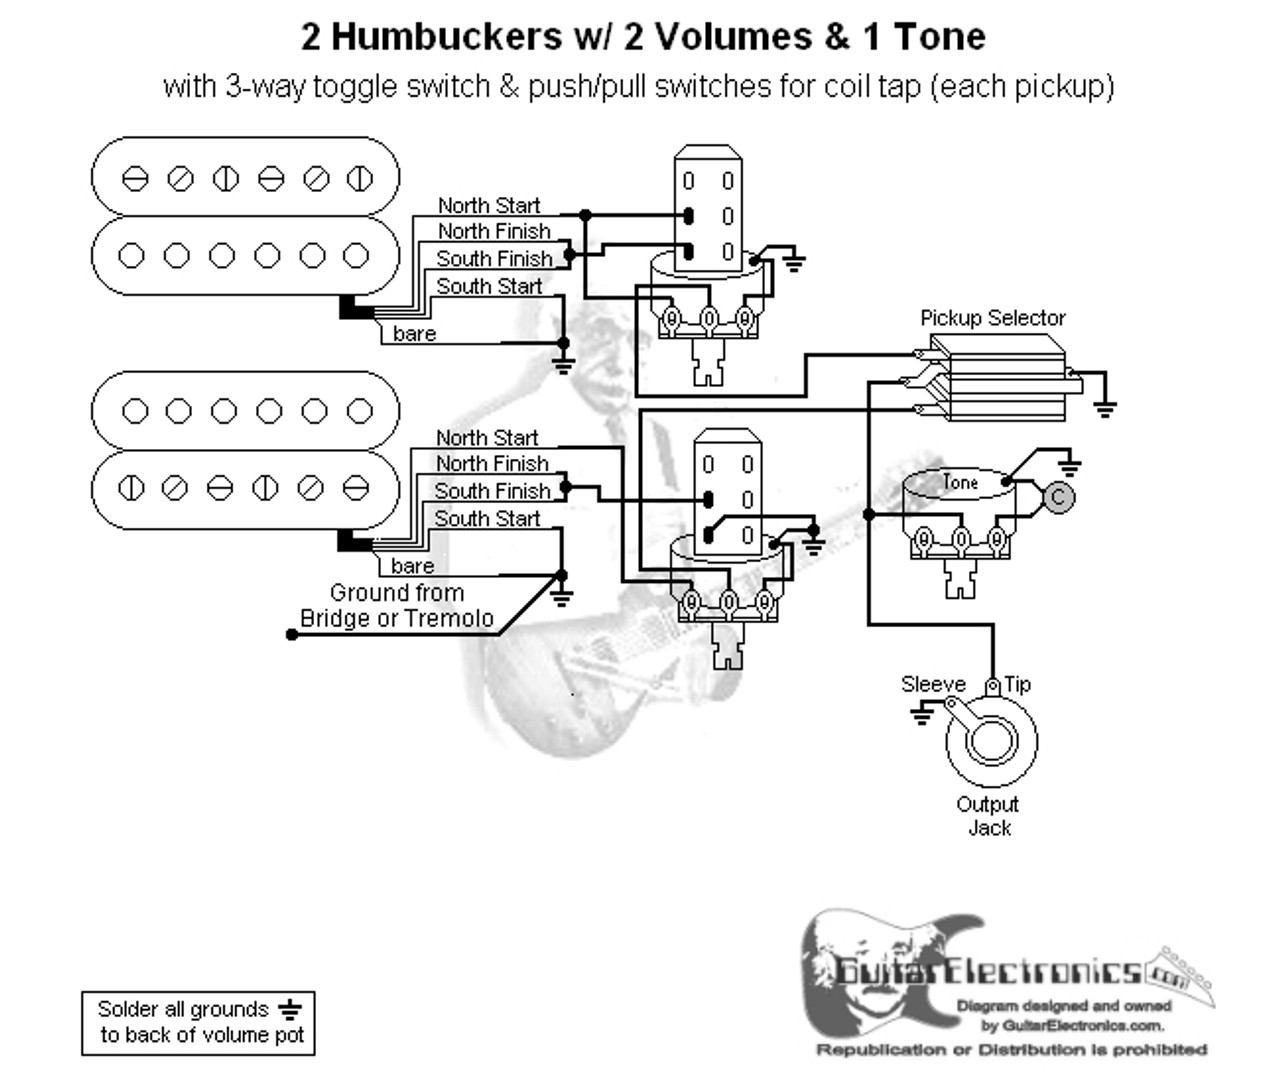 2 humbuckers 3 way toggle switch 2 volumes 1 tone individual coil diagram 2 humbuckers 3way toggle switch 2 volumes 1 tone coil tap [ 1280 x 1083 Pixel ]